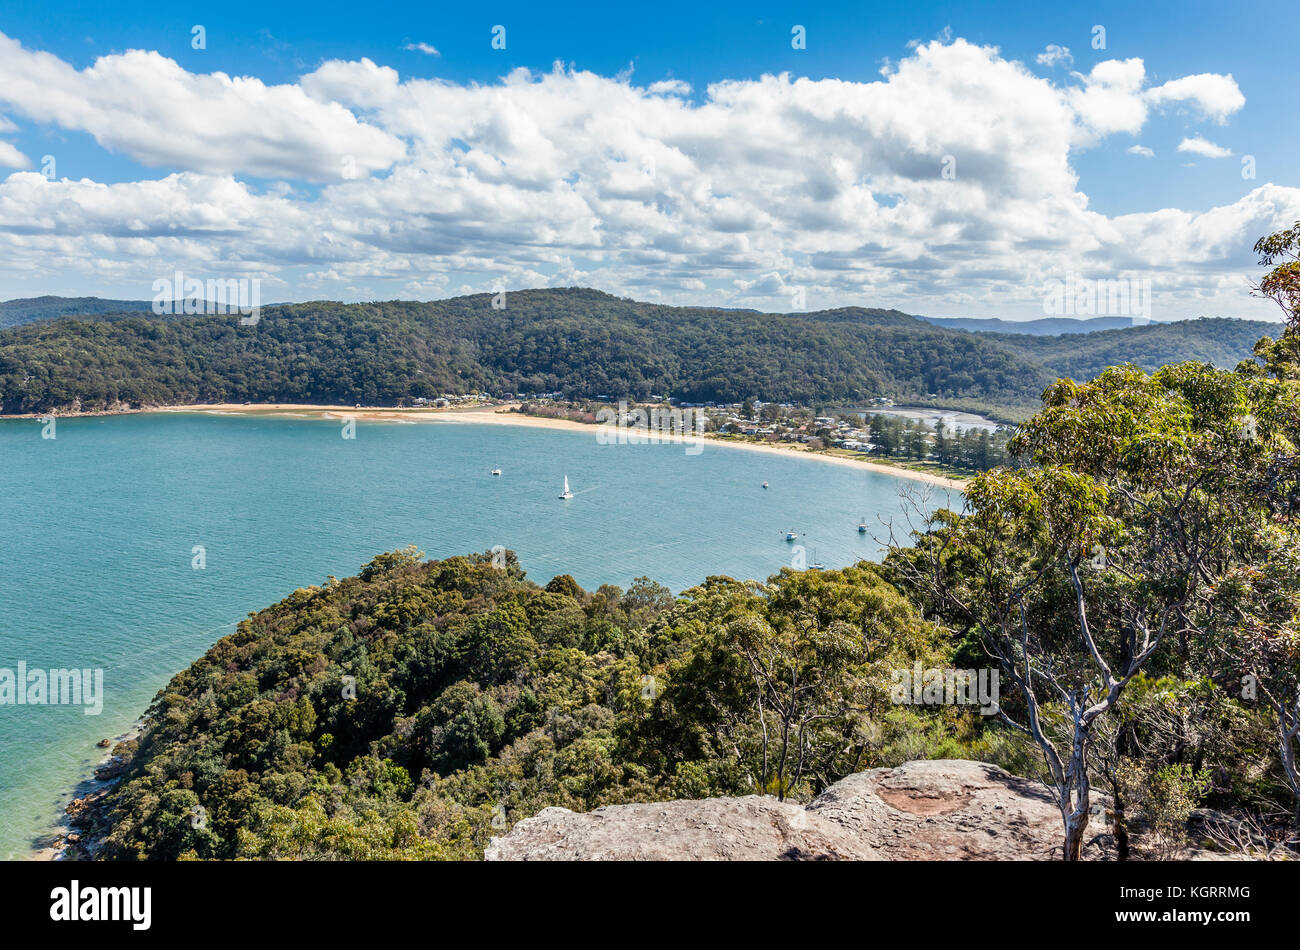 Australia, New South Wales, Central Coast, Brisbane Water National Park, view of the Hawkesbury River; brisk Bay - Stock Image